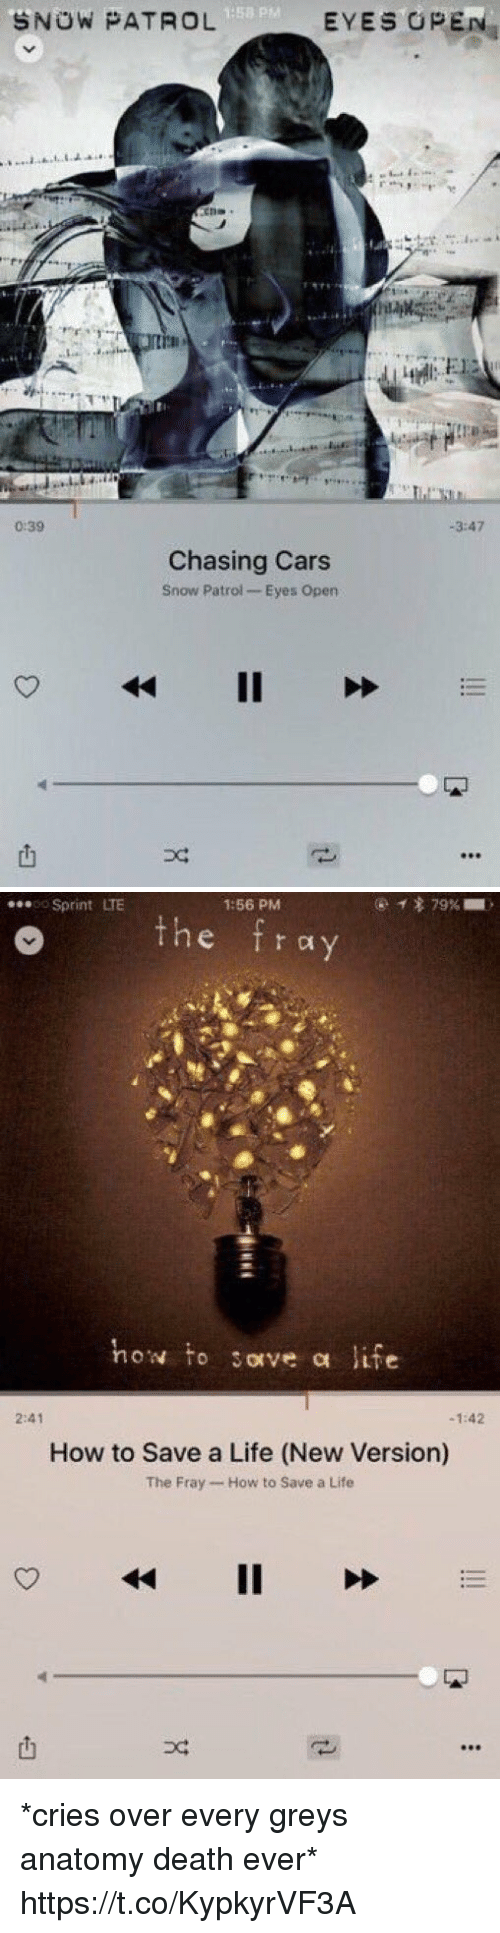 fray: 1:58 p  SNOW PATROL  EYES OPEN  ths.  0:39  -3:47  Chasing Cars  Snow Patrol Eyes Open   ...so Sprint LTE  1:56 PM  o the fray  how to sorve a life  2:41  -1:42  How to Save a Life (New Version)  The Fray How to Save a Life  也  凹  DC *cries over every greys anatomy death ever* https://t.co/KypkyrVF3A